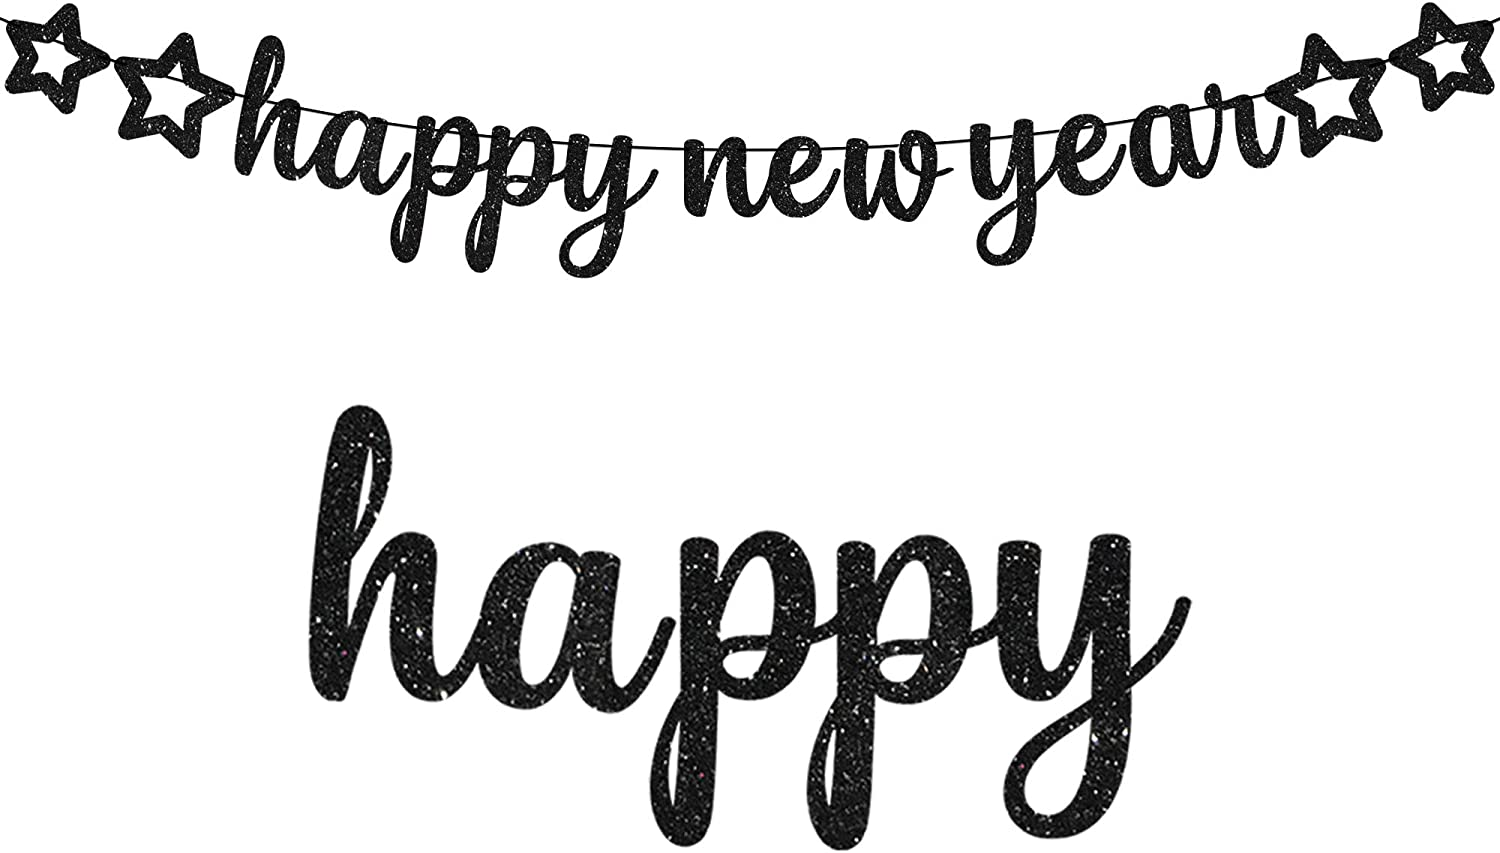 Happy New Year Banner for NYE Decorations 2021 - Black Glitter   Happy New Year Sign for 2021 New Years Decorations   New Years Eve Party Supplies 2021   RoseGold Happy New Year Decorations 2021